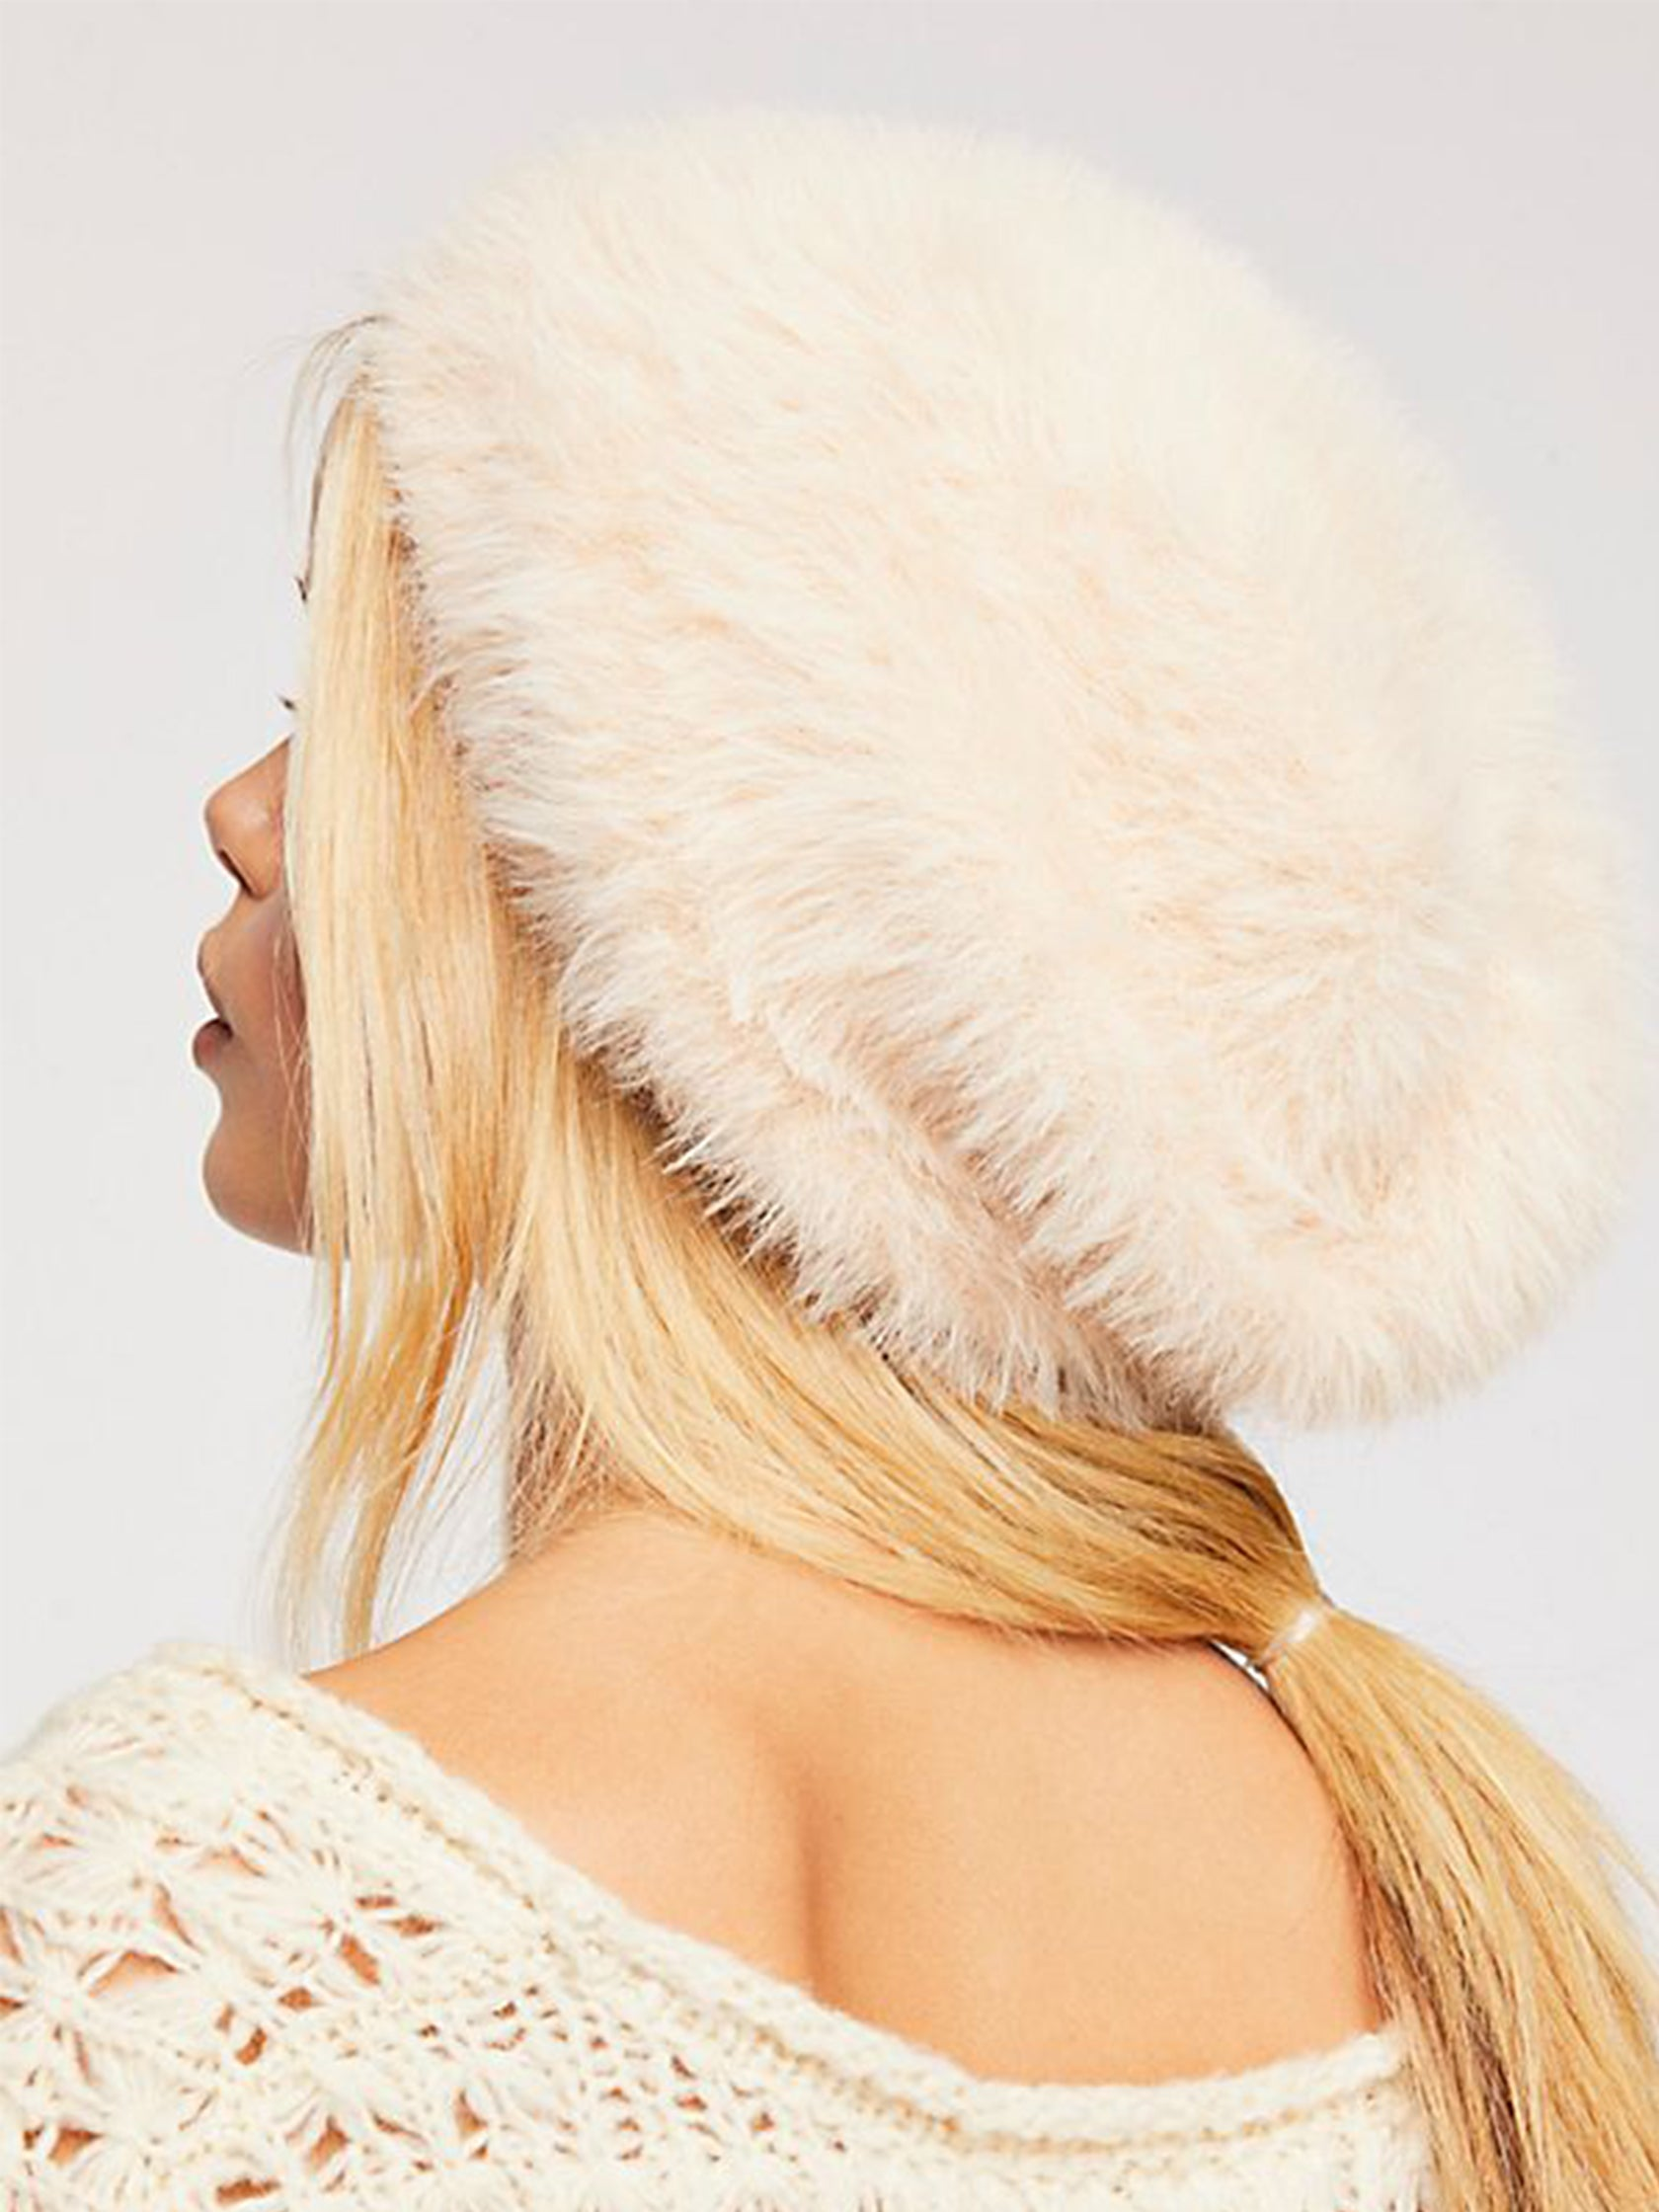 Women wearing a hat rental from Free People called Big Sky Slouchy Beanie f9be816cf7f